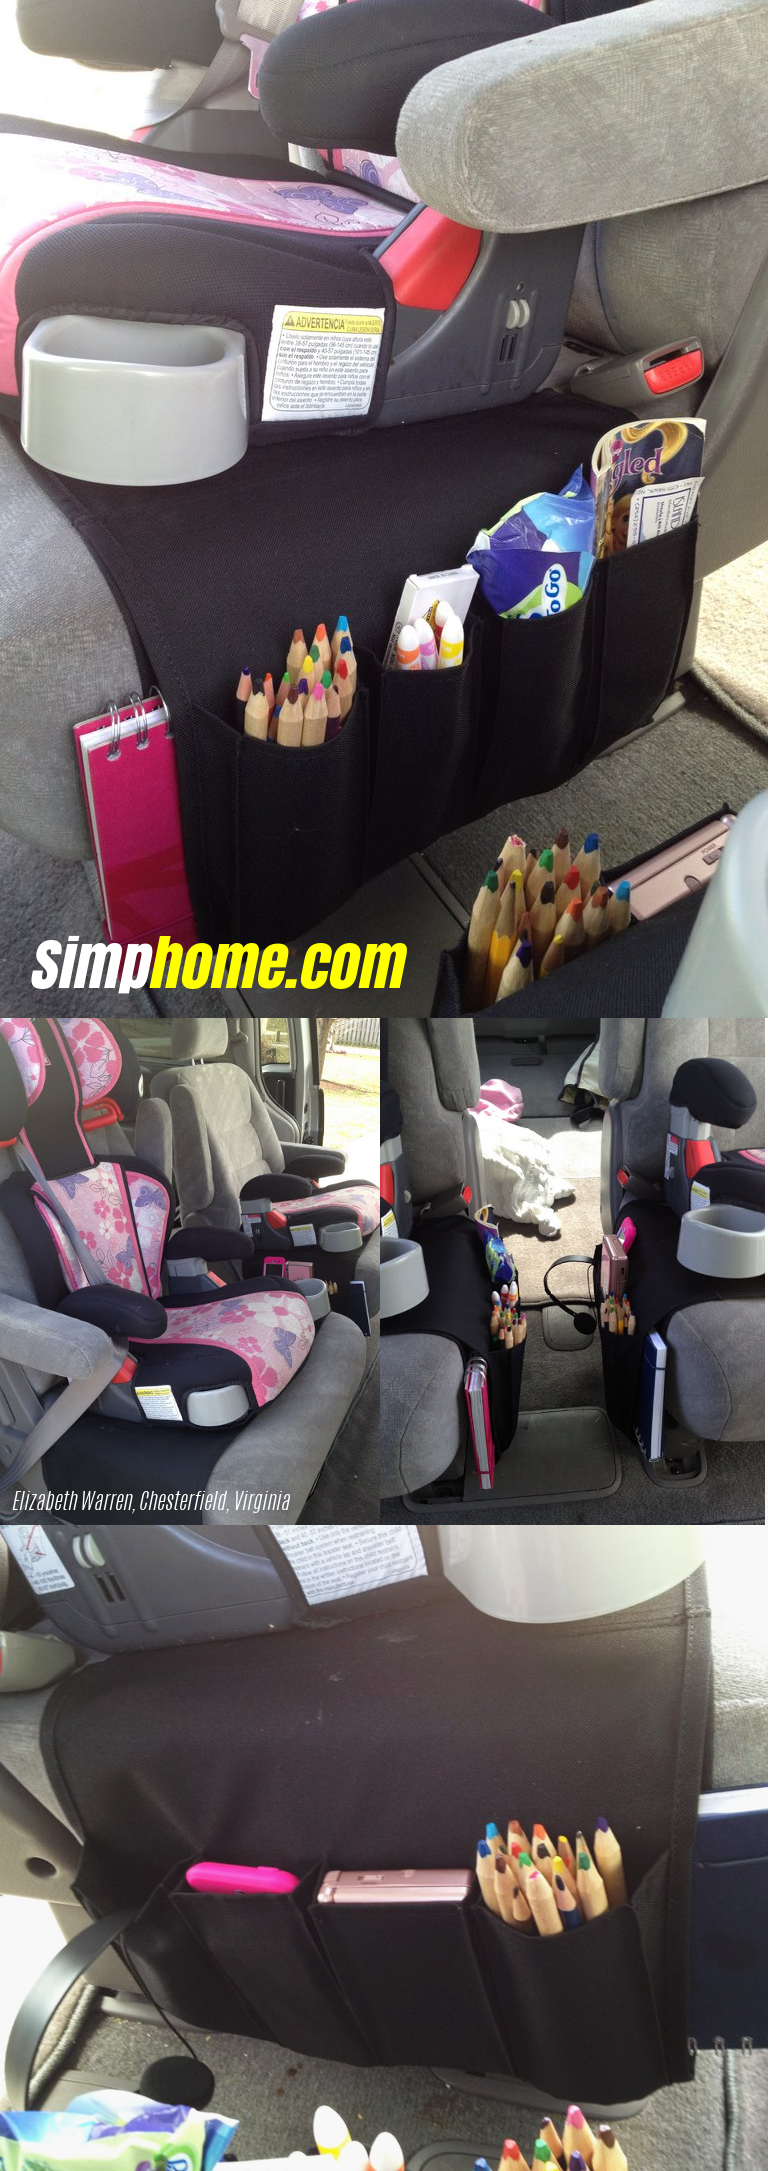 13 Use the Flort remote holder in the car for all your kids stuff via simphome 1